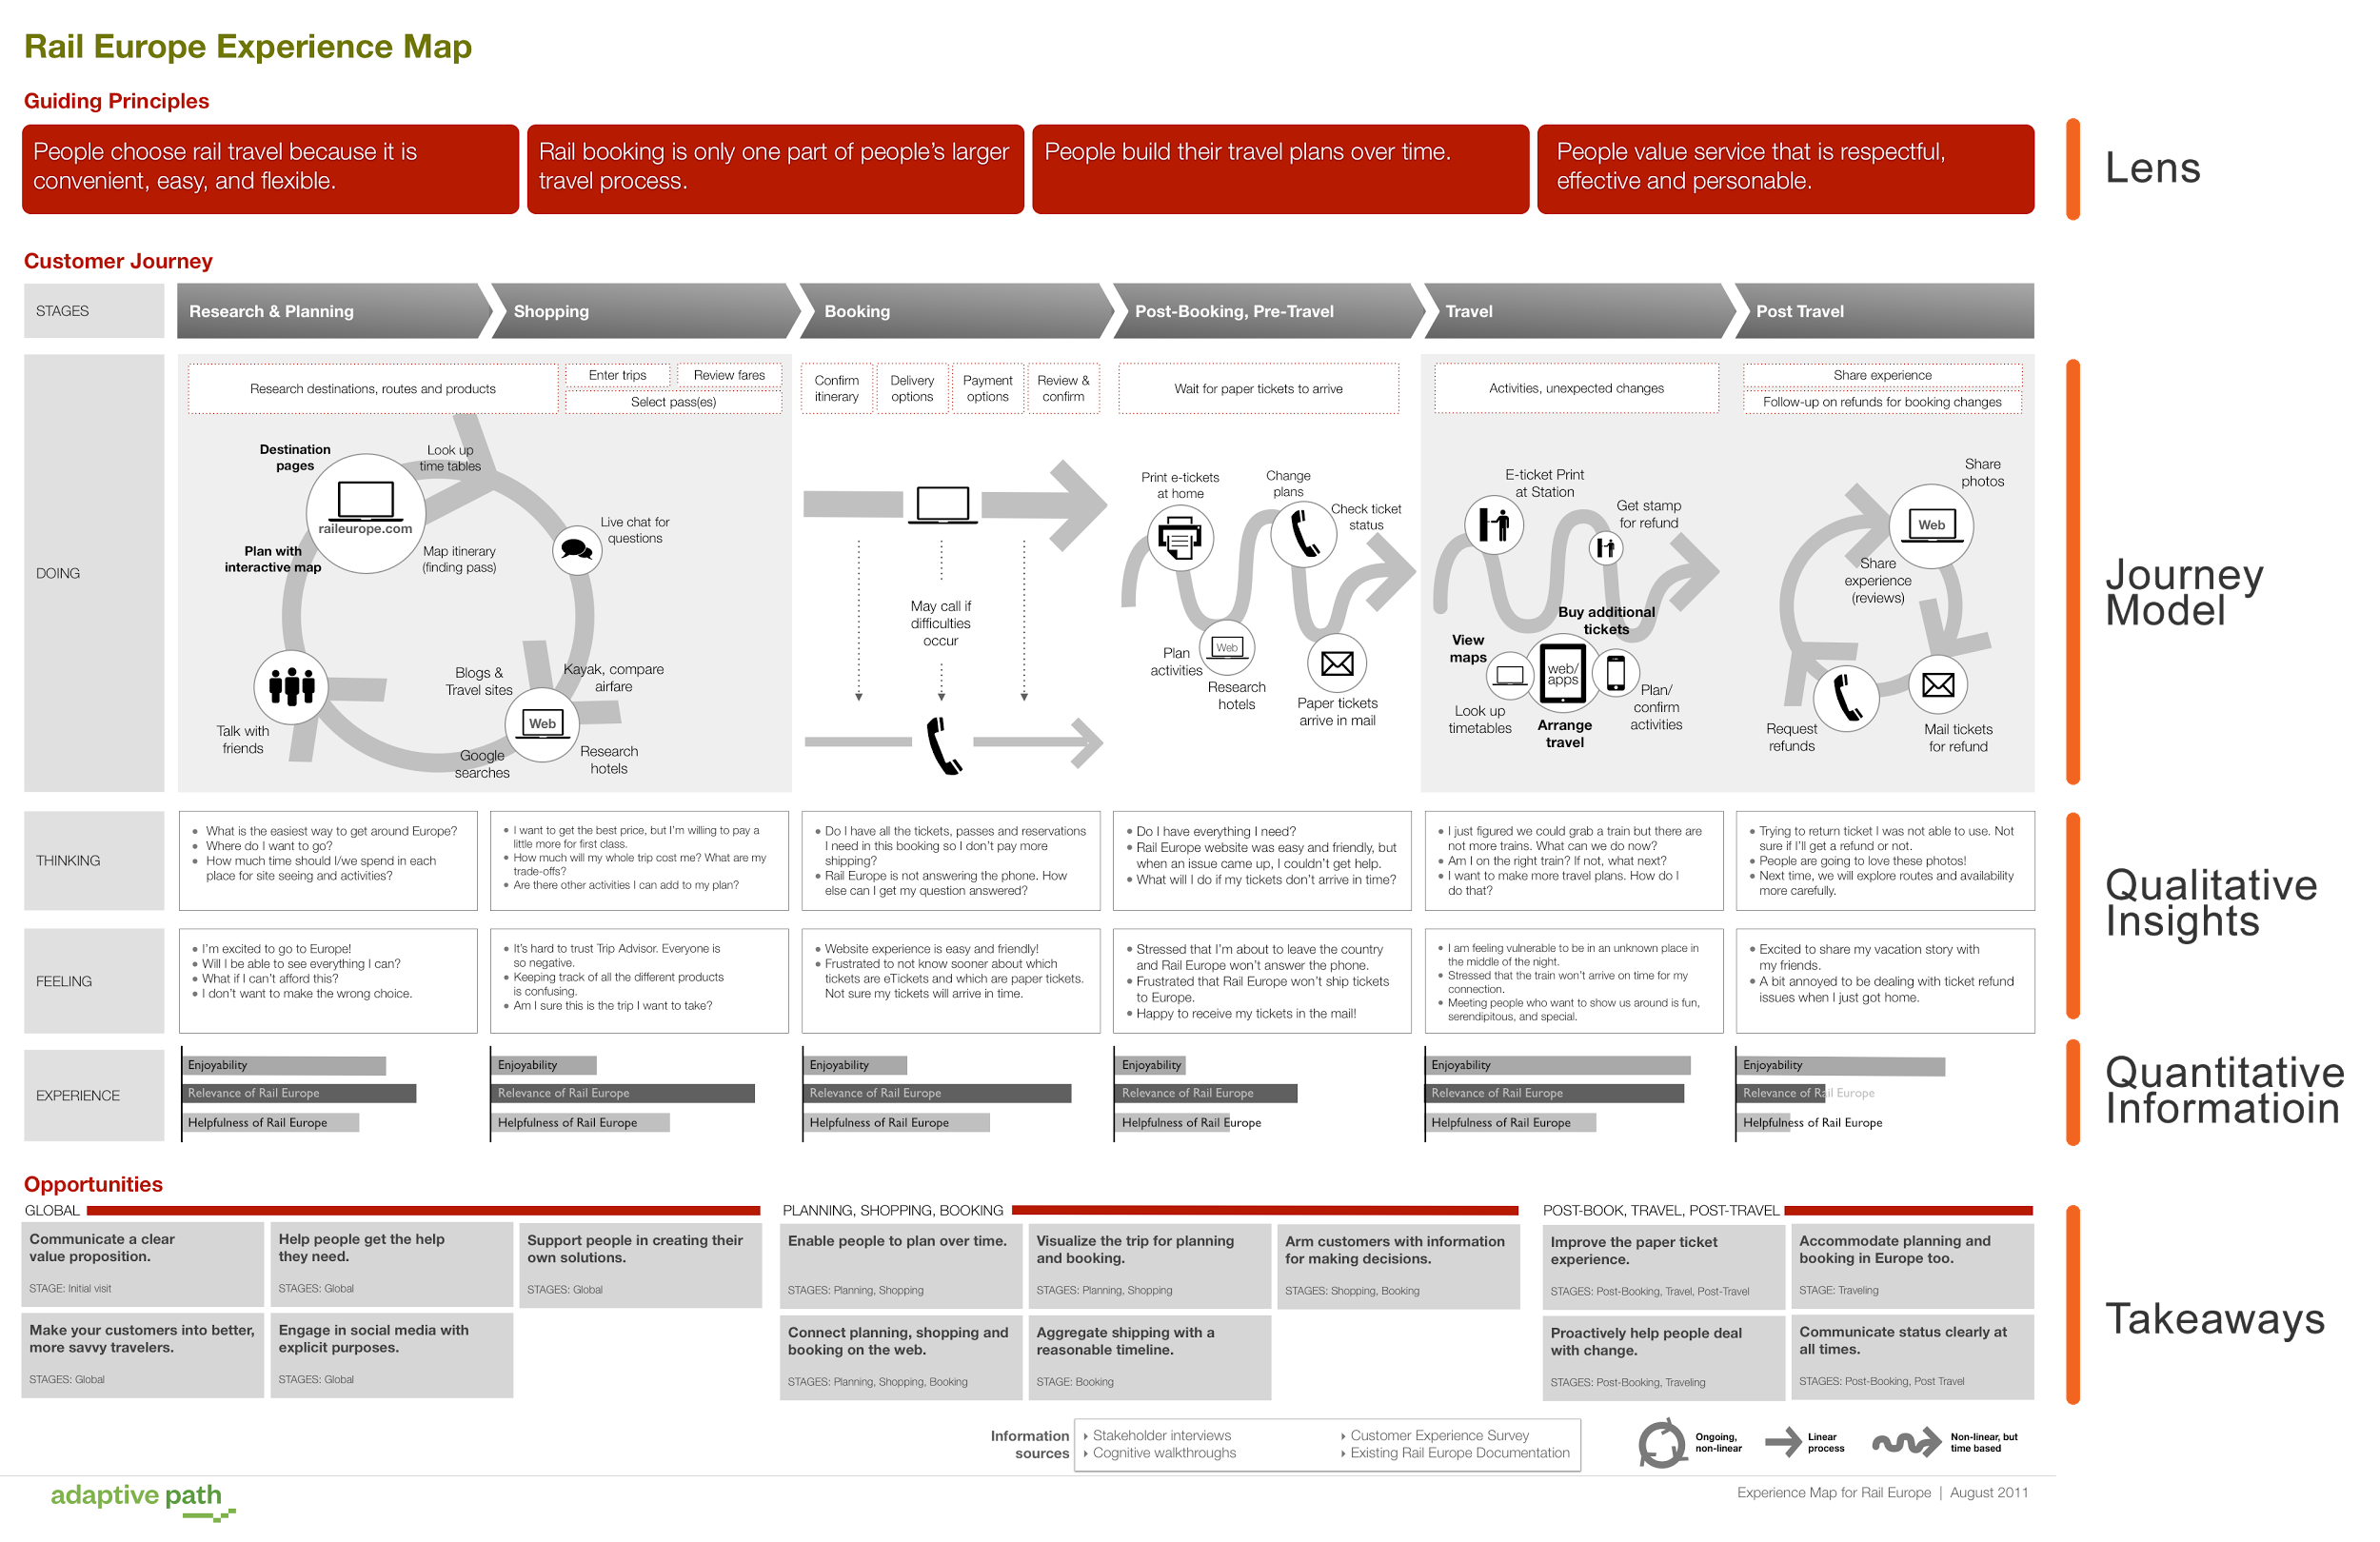 Rail Europe customer journey map